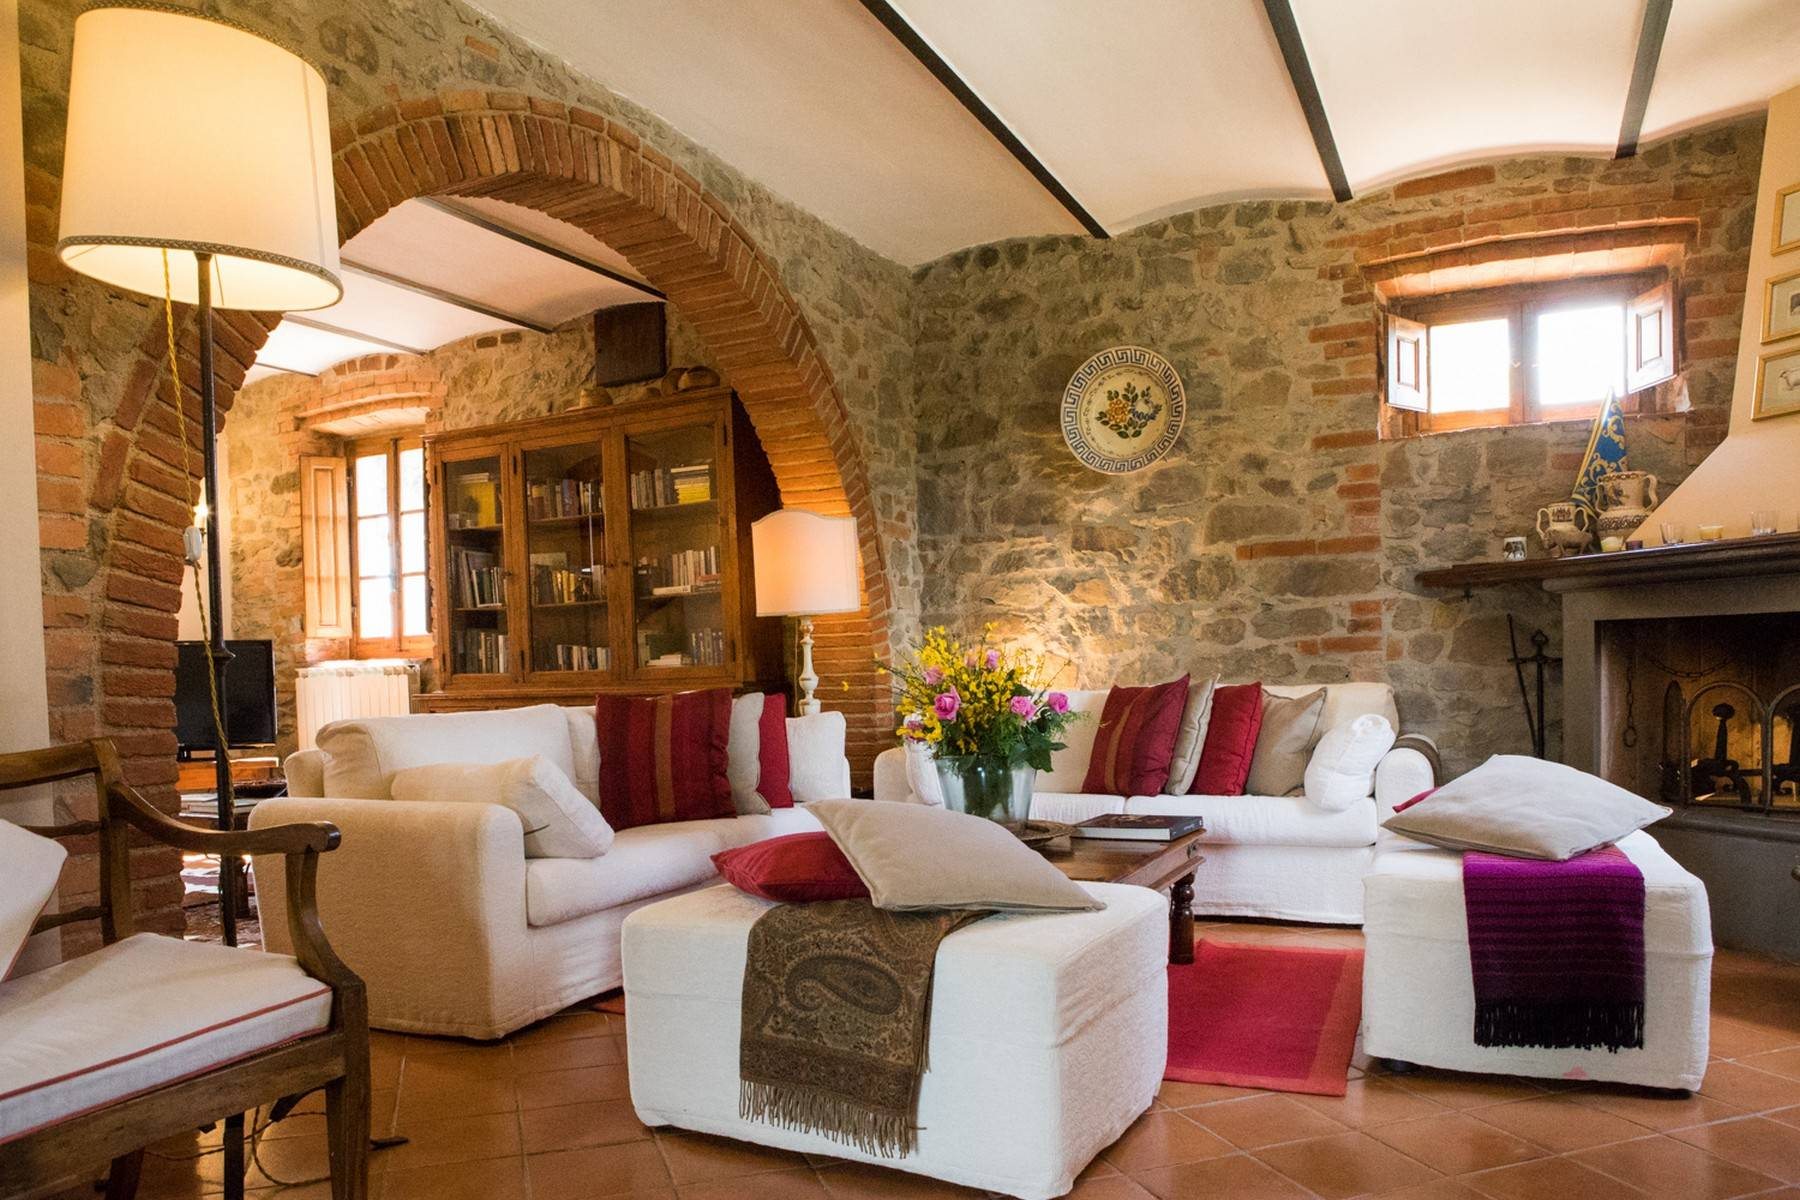 Rustic House in the Tuscan Hills for Sale - 7